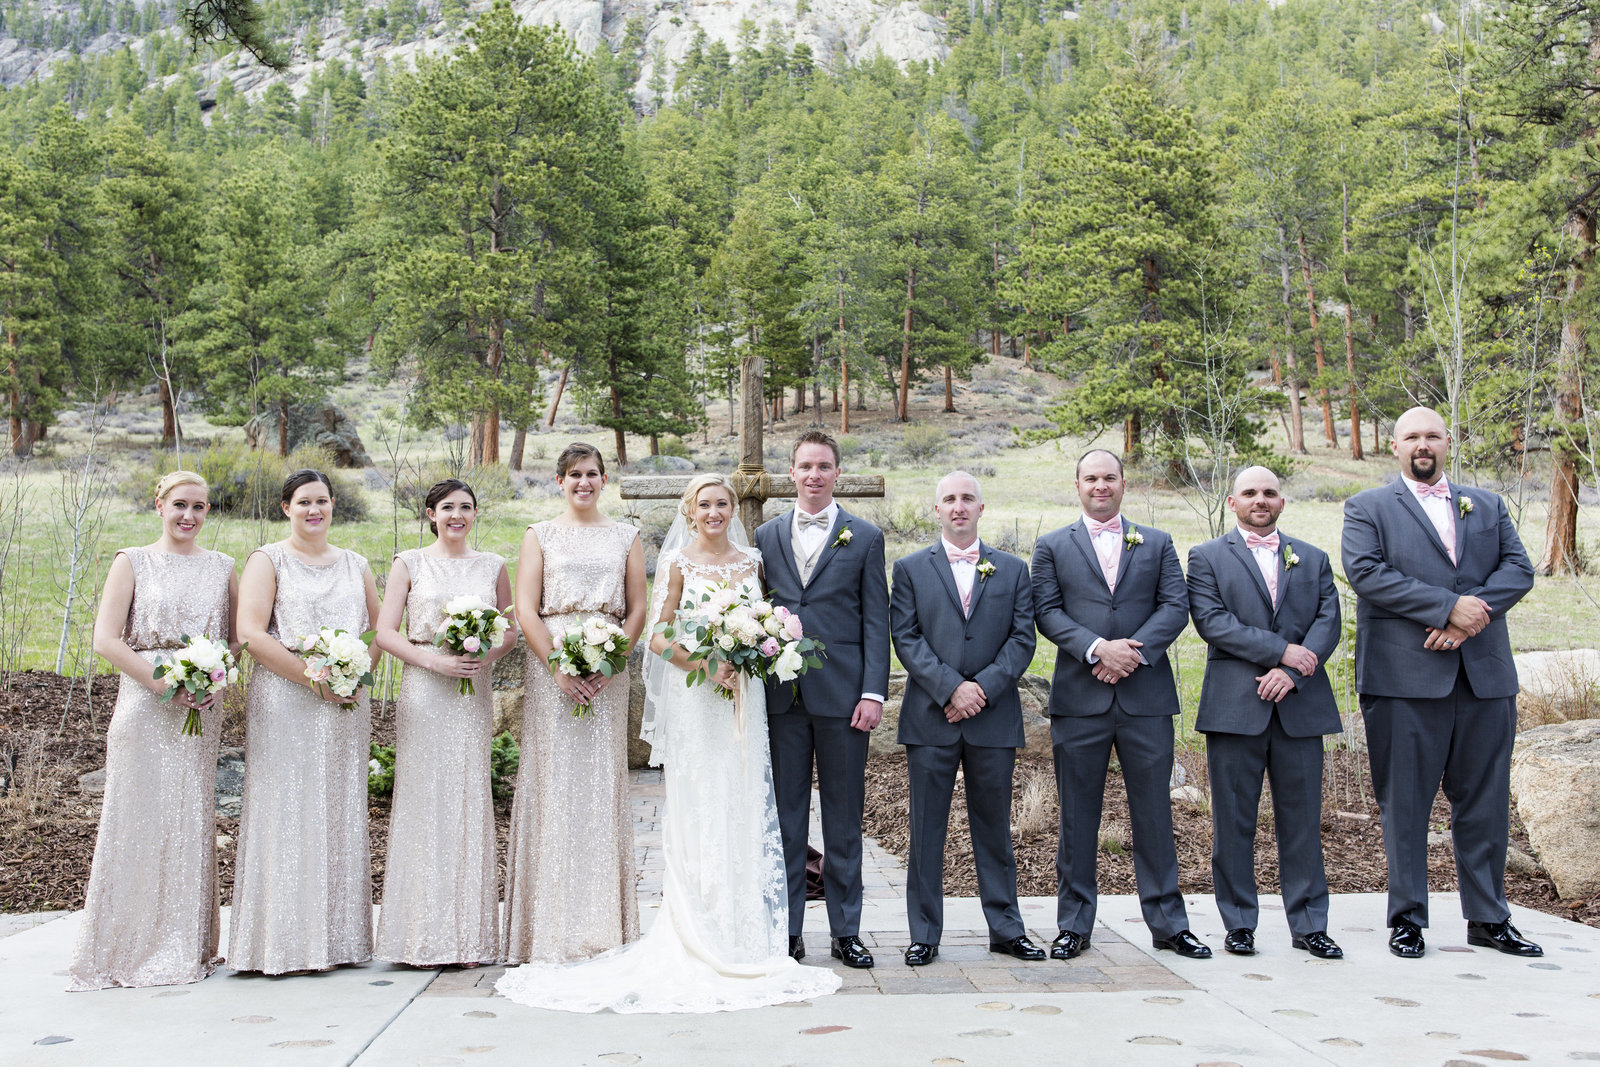 Jessi-Zach-Photography-Colorado-Mountain-Wedding-Photographer-Della-Terra-Mountain-Chateau_36